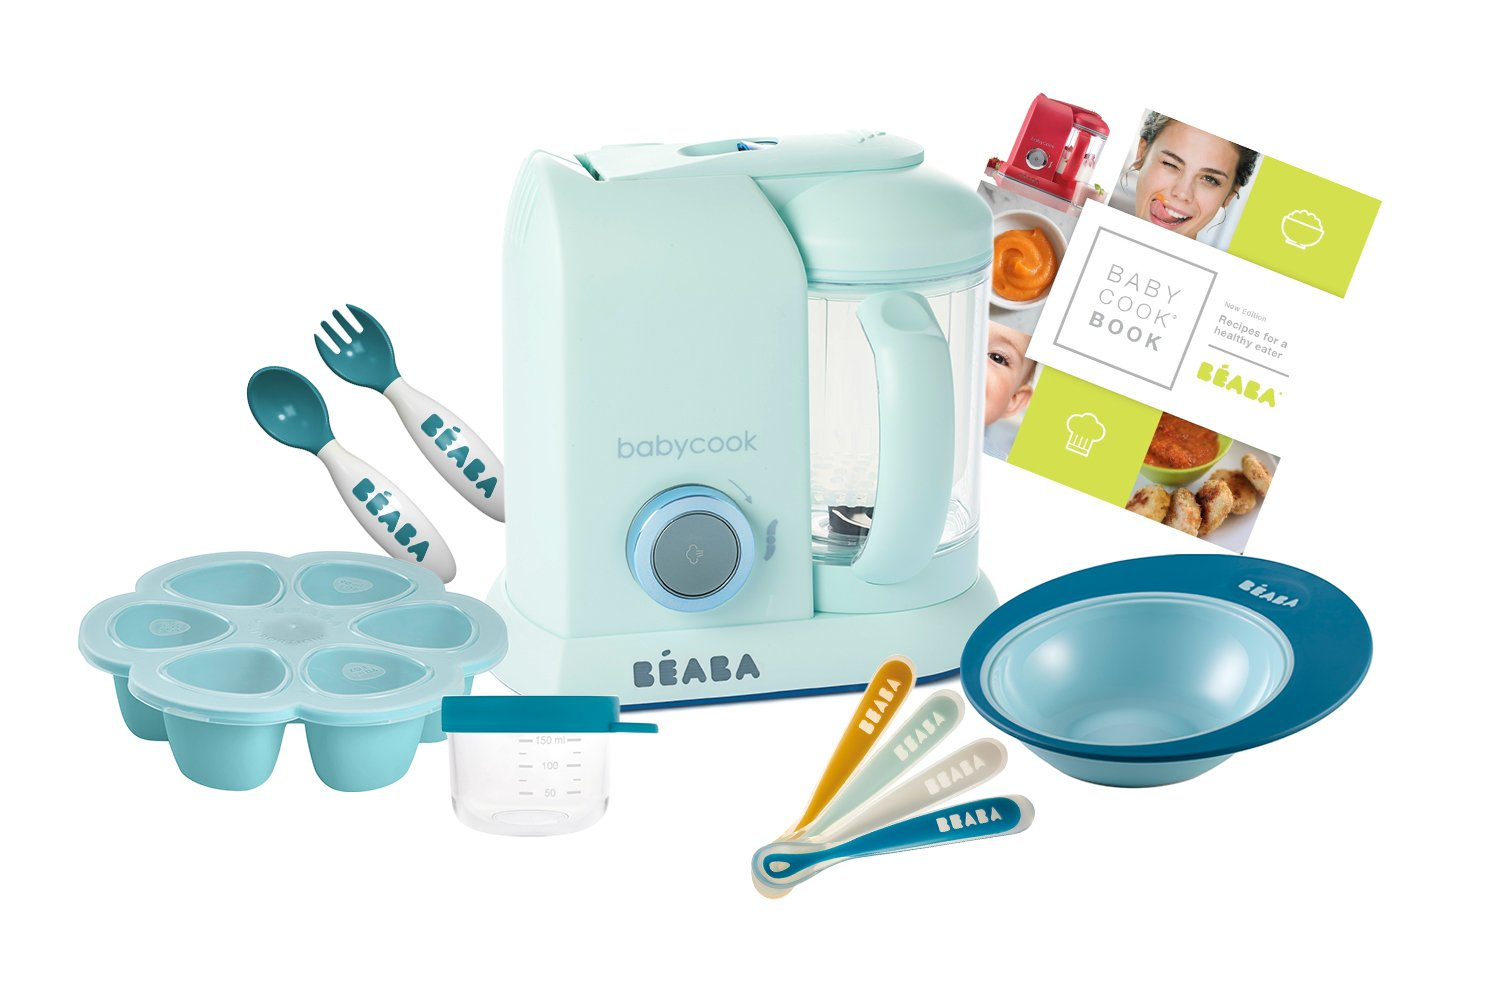 BEABA 2nd Stage Feeding Gift Set, includes Babycook, silicone spoons, 2nd stage cutlery, silicone food storage tray, bowls, glass containers, cookbook, Blueberry